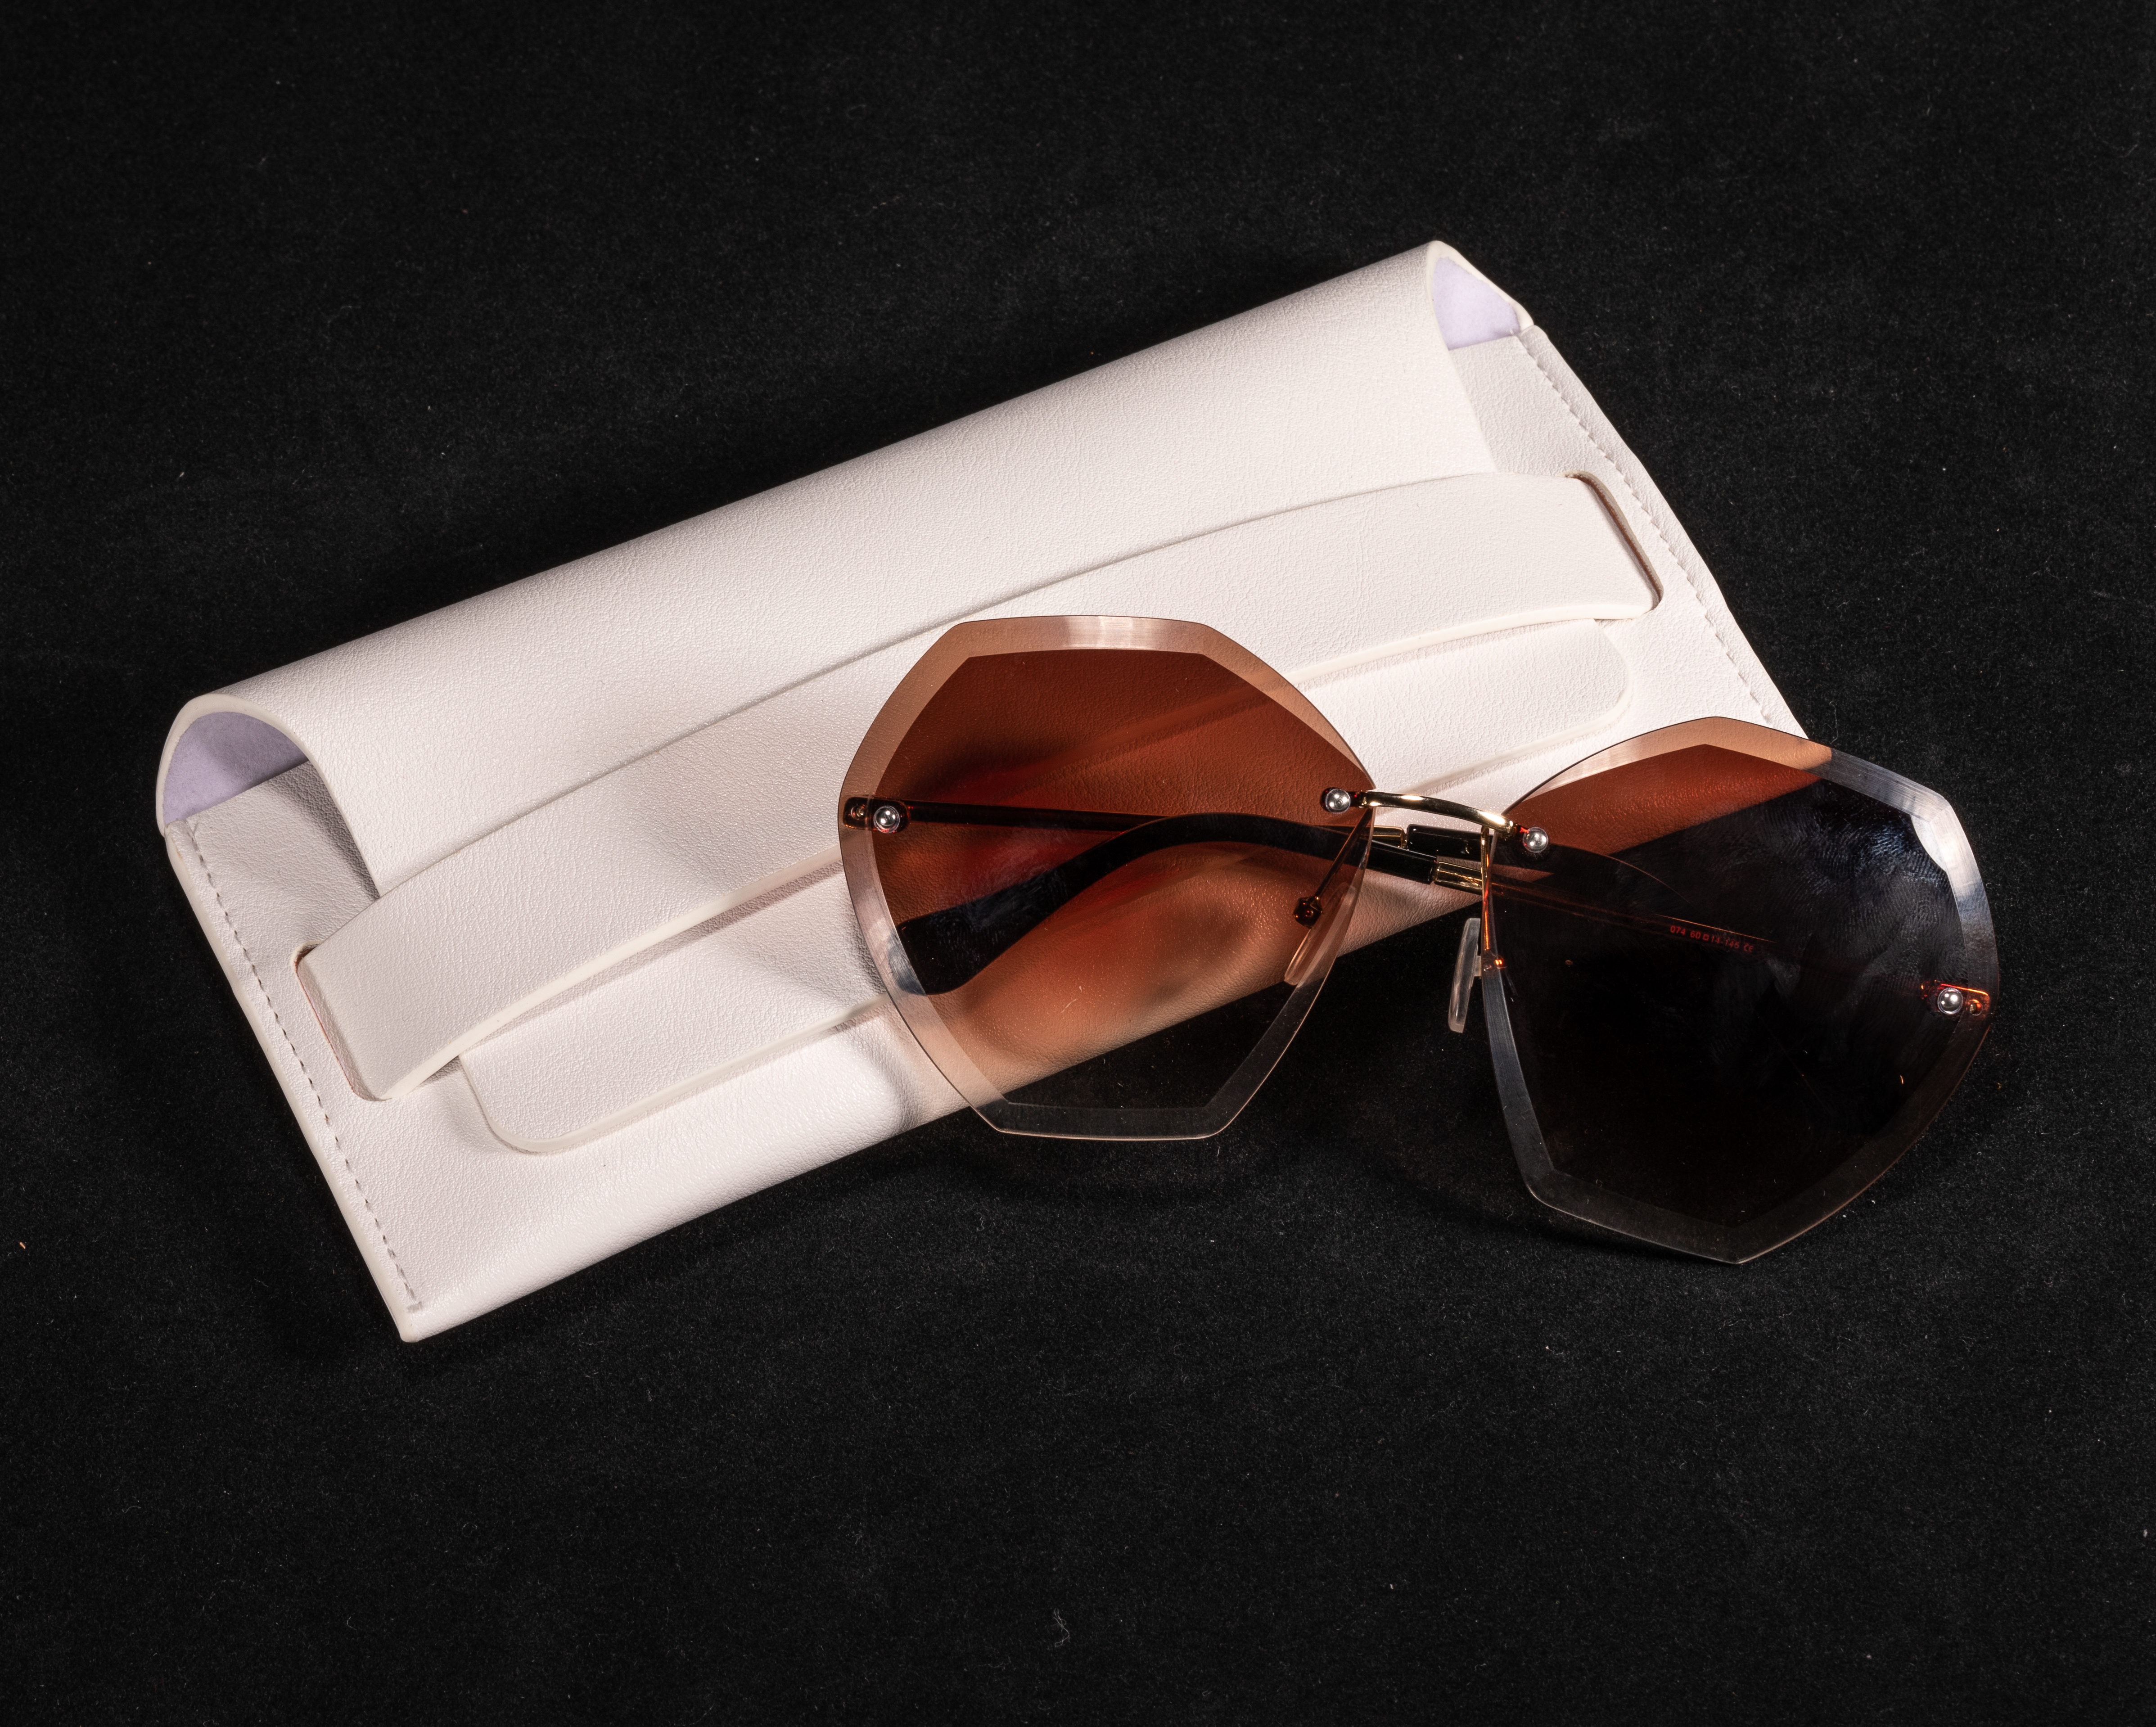 A White, Pocketed Eyeglass Case Shaped Like A Leather Bag